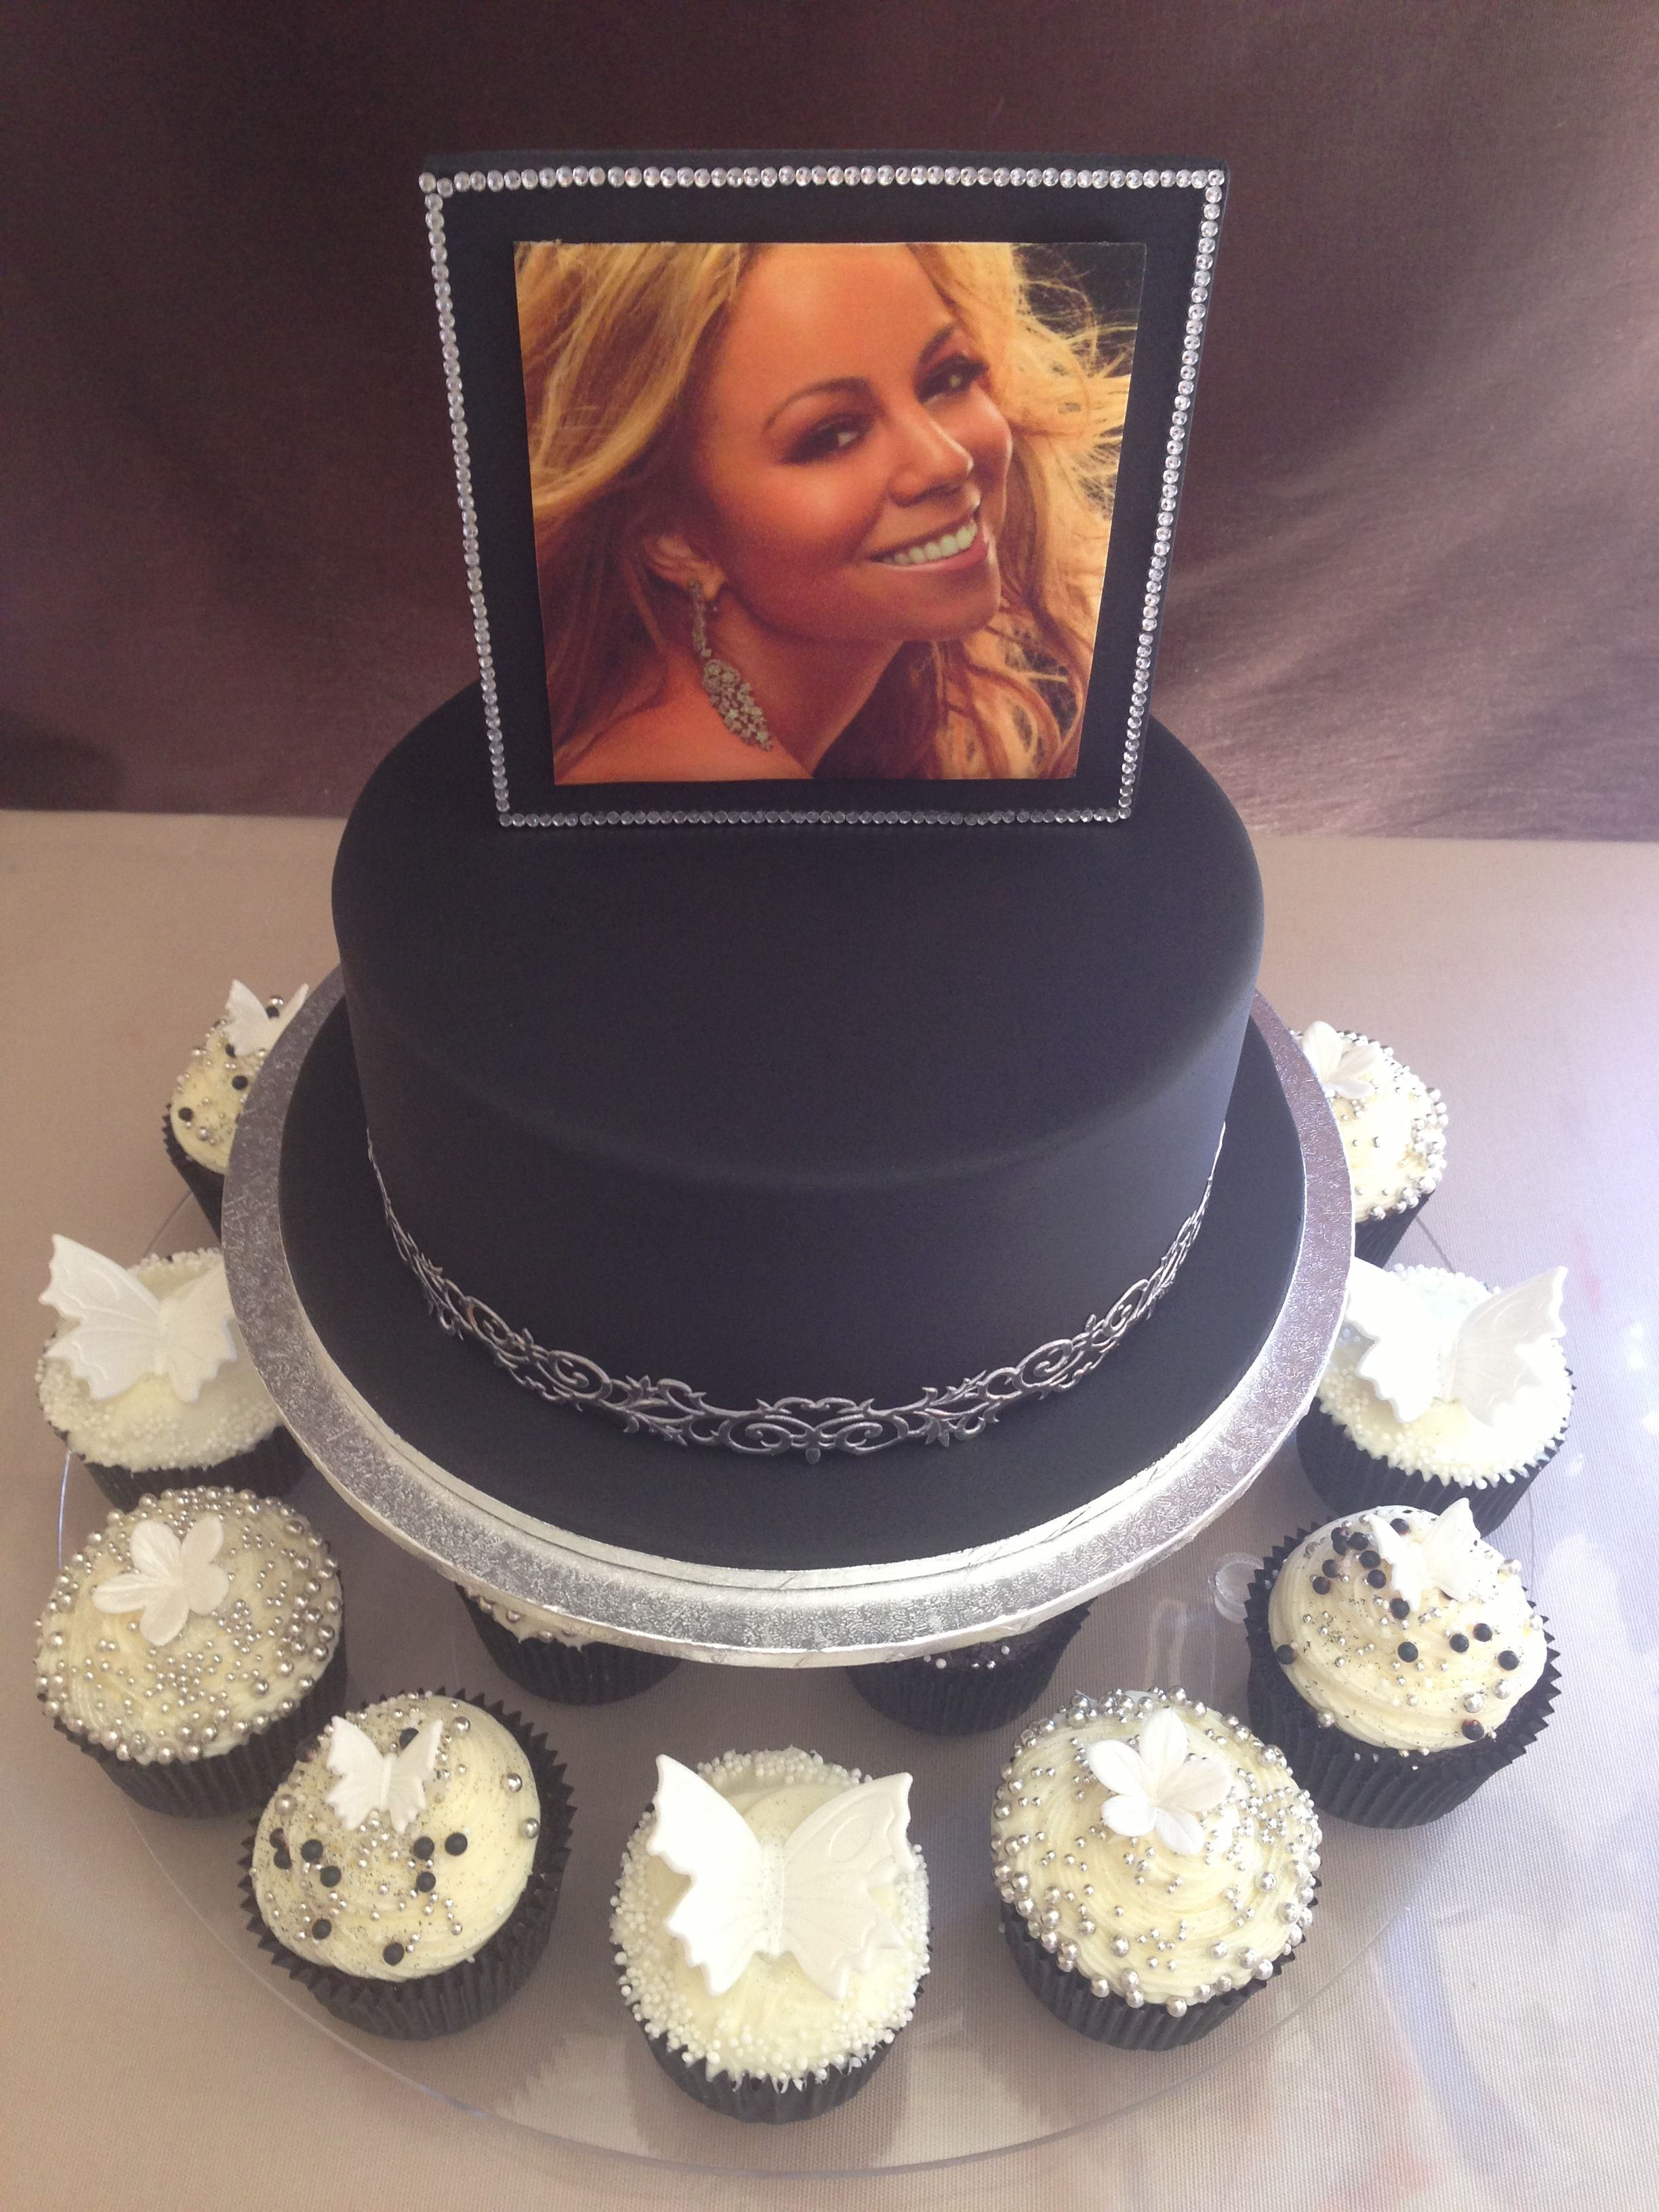 Mariah Carey Inspired Birthday Cake And Cupcakes Ordering For Bday Im Serious